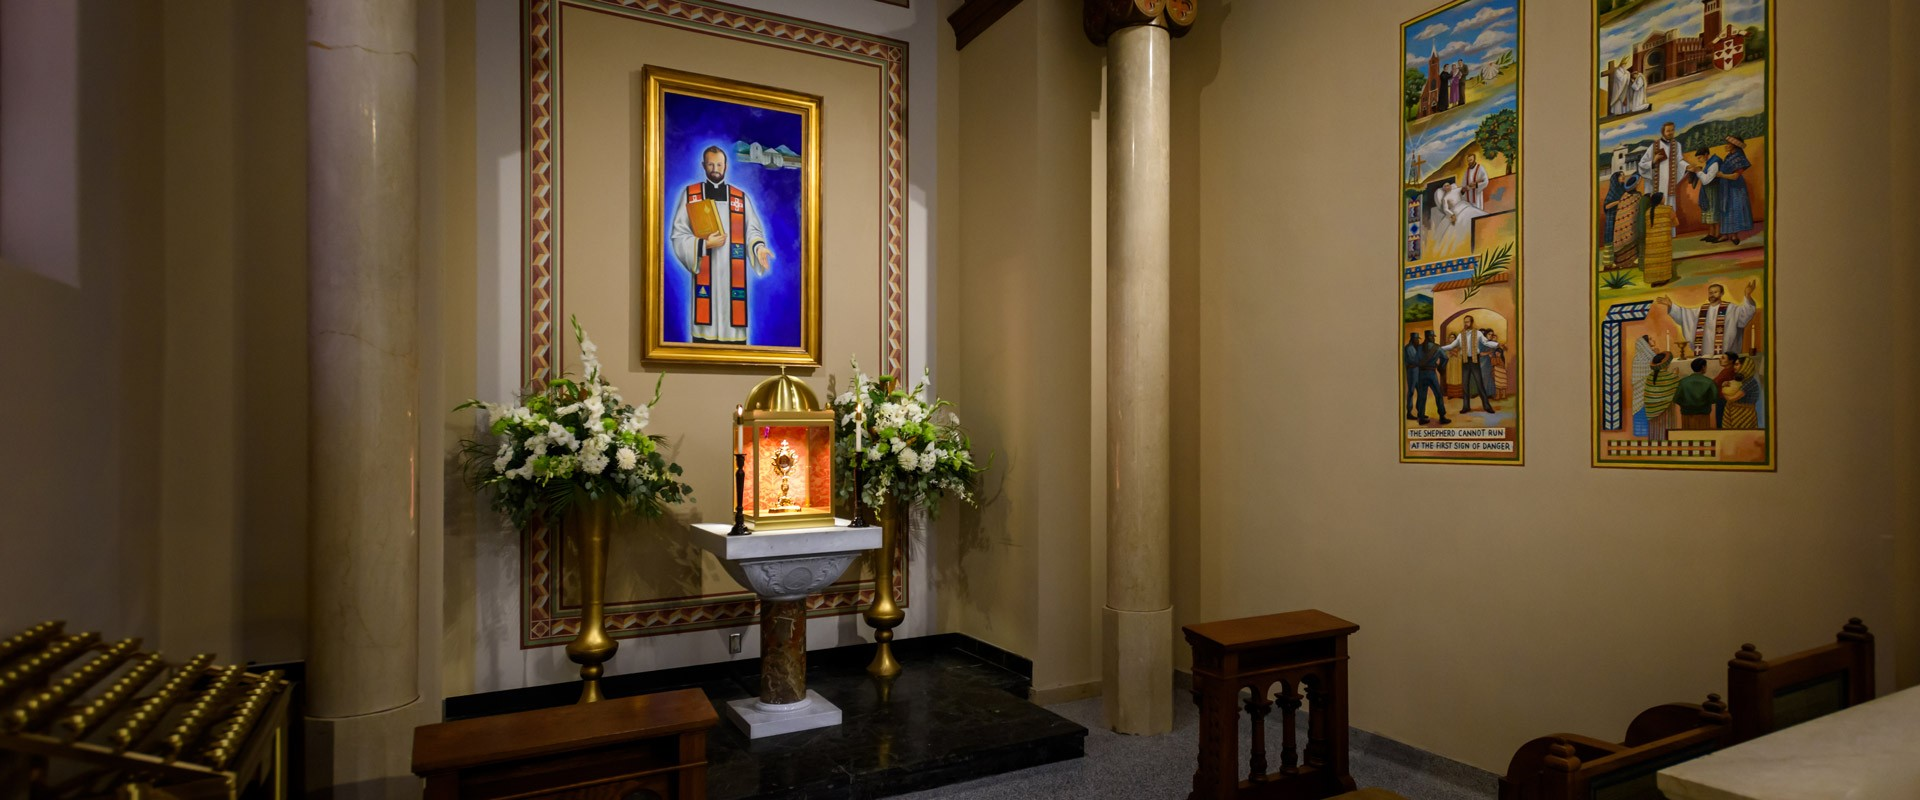 Our Lady of Perpetual Help Oklahoma paintings